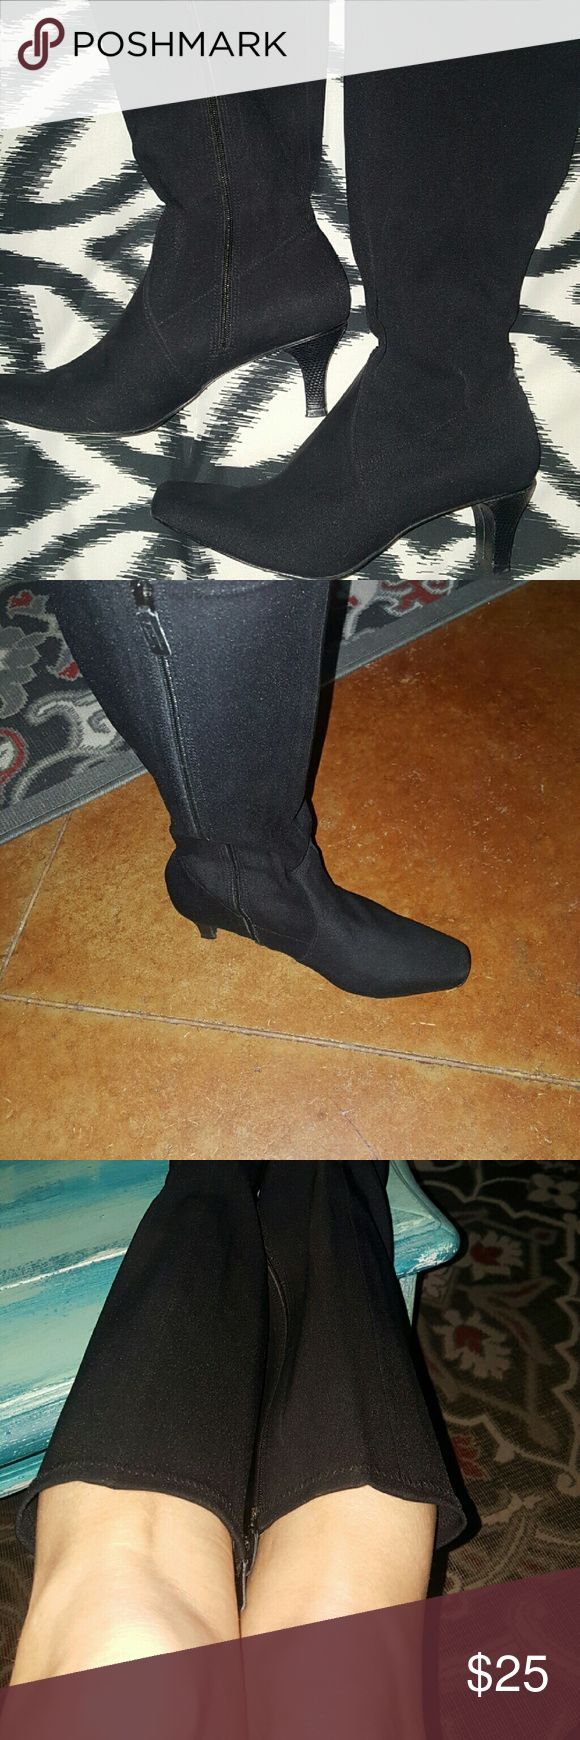 Ladies black boots Perfect black boots for winter. Below the knee. Small heel. I love these but they are to big around my legs. Keep in mind I am petite, so it's hard to find tall boots to fit. Women's size 5 from Talbots. I did wear once. No damage. Pet and smoke free. Talbots Shoes Heeled Boots